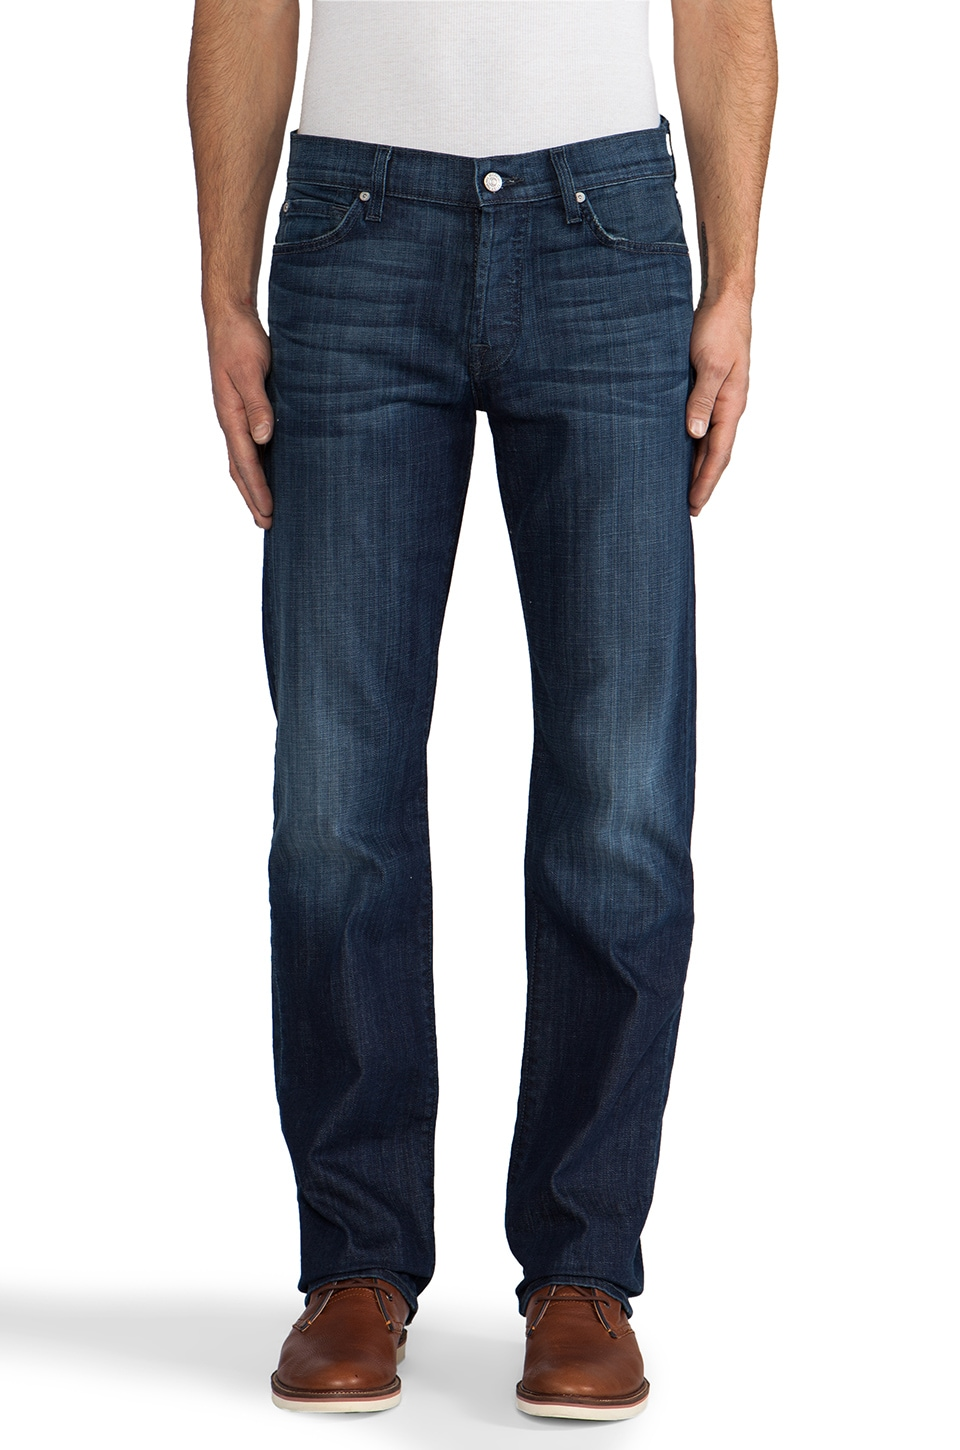 7 For All Mankind Standard in Ether Blue